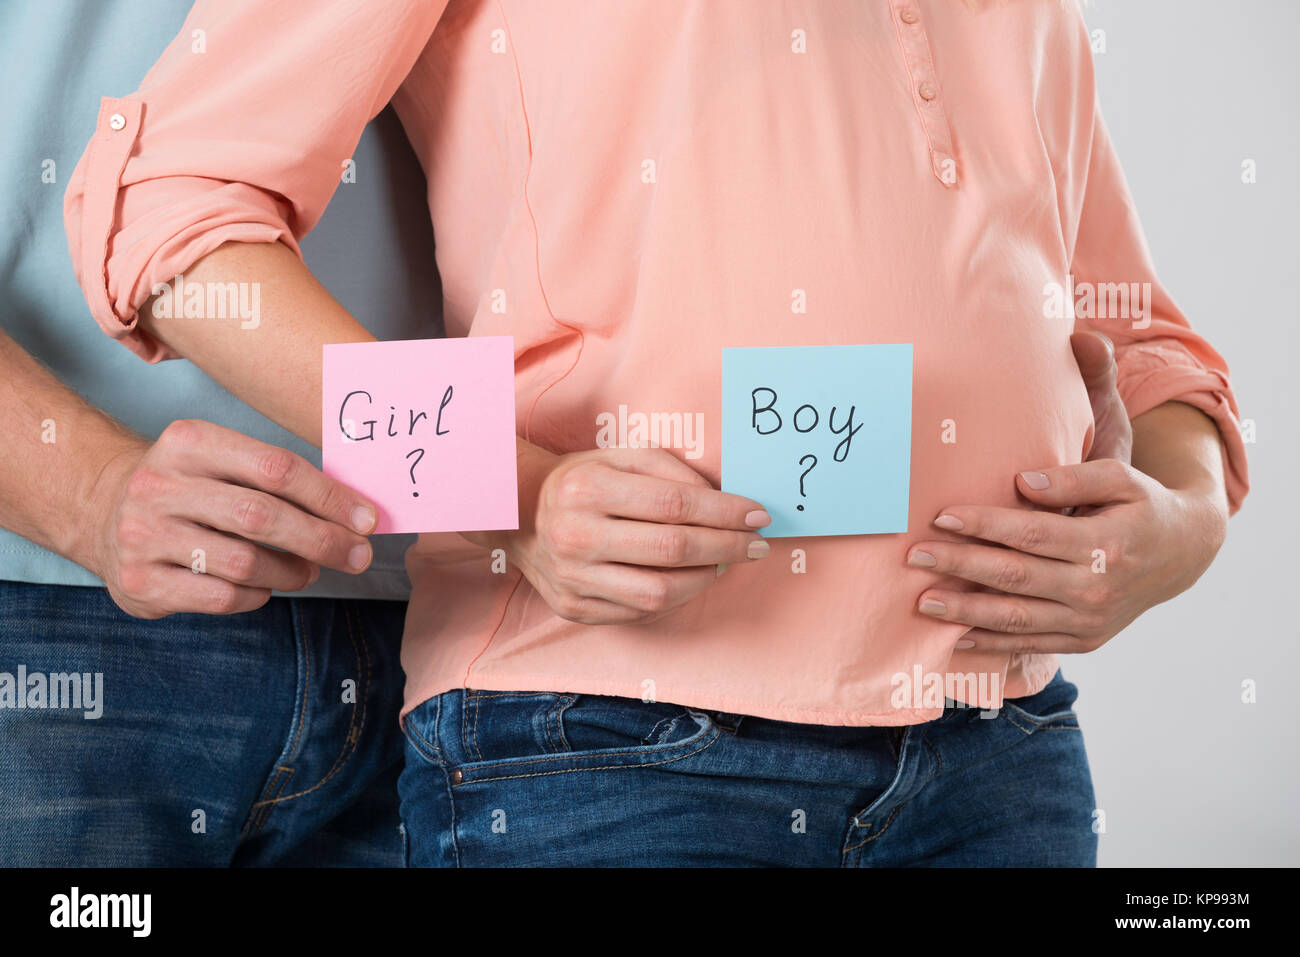 Expecting Couple Holding Paper With Girl And Boy Text - Stock Image